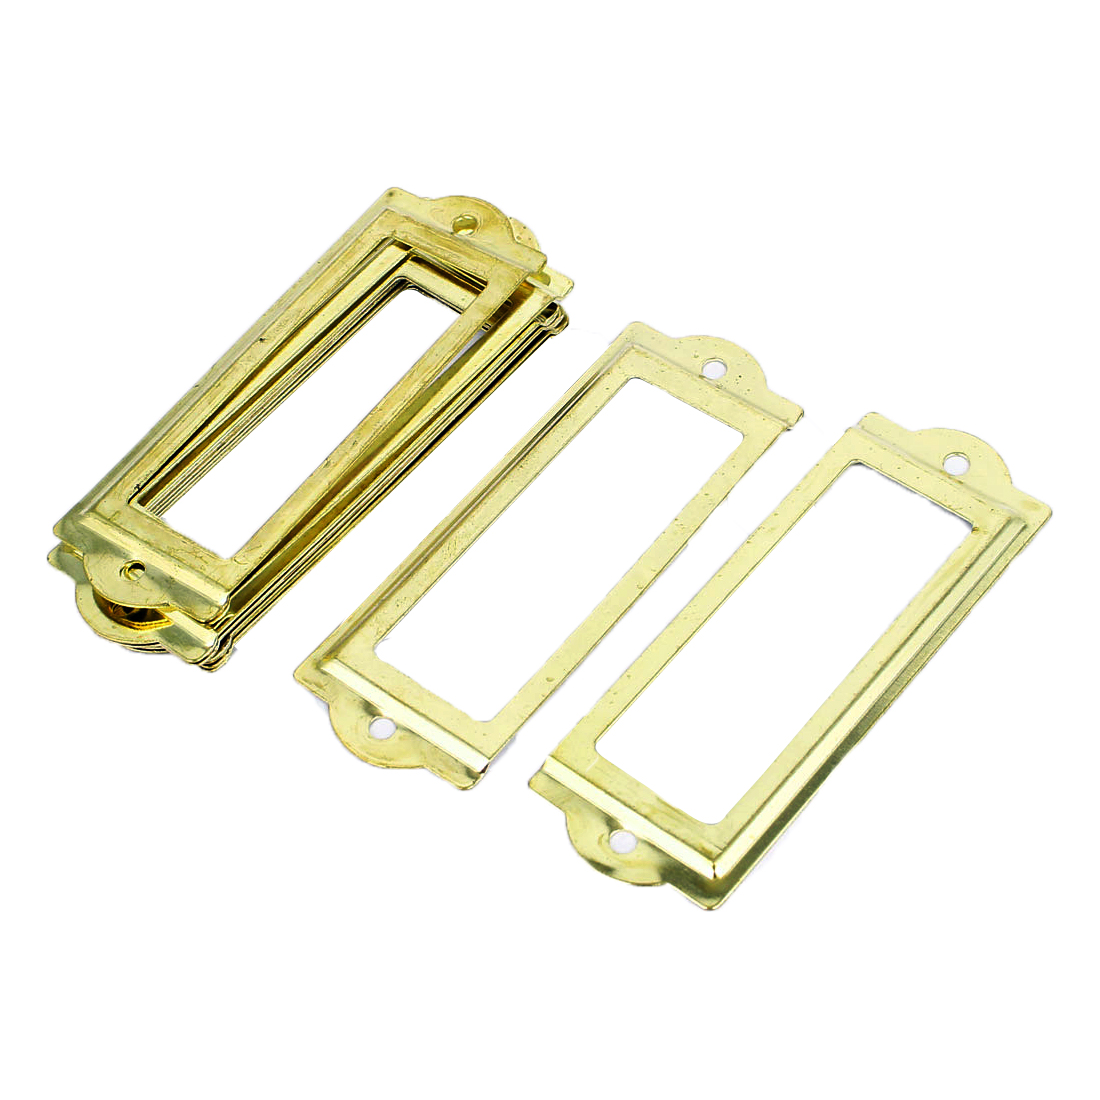 83mmx30mm Office Drawer Cabinet Label Pull Holder Frame Gold Tone 10pcs